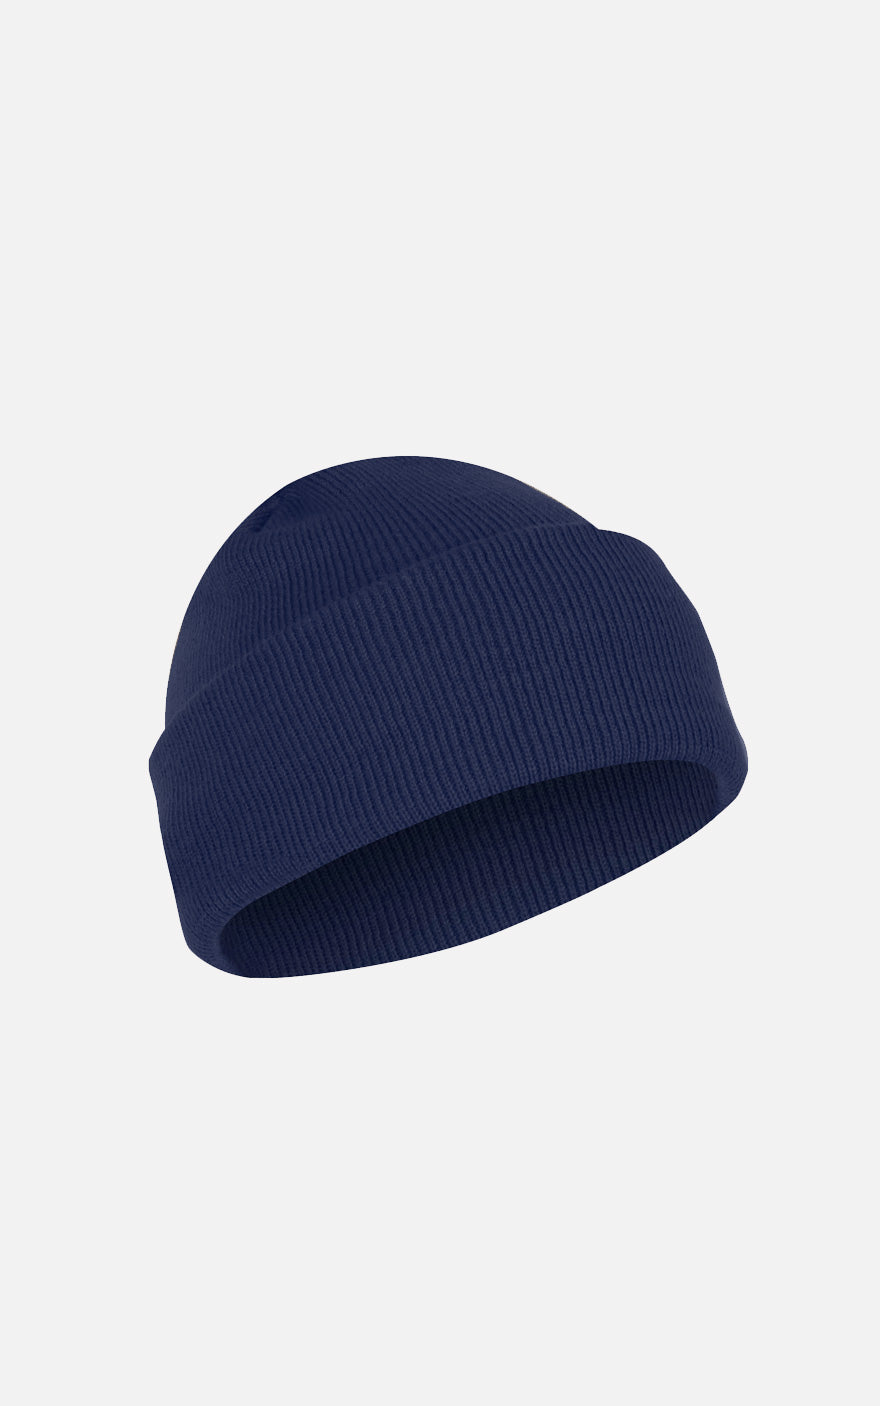 Fine Knit Watch Cap Navy